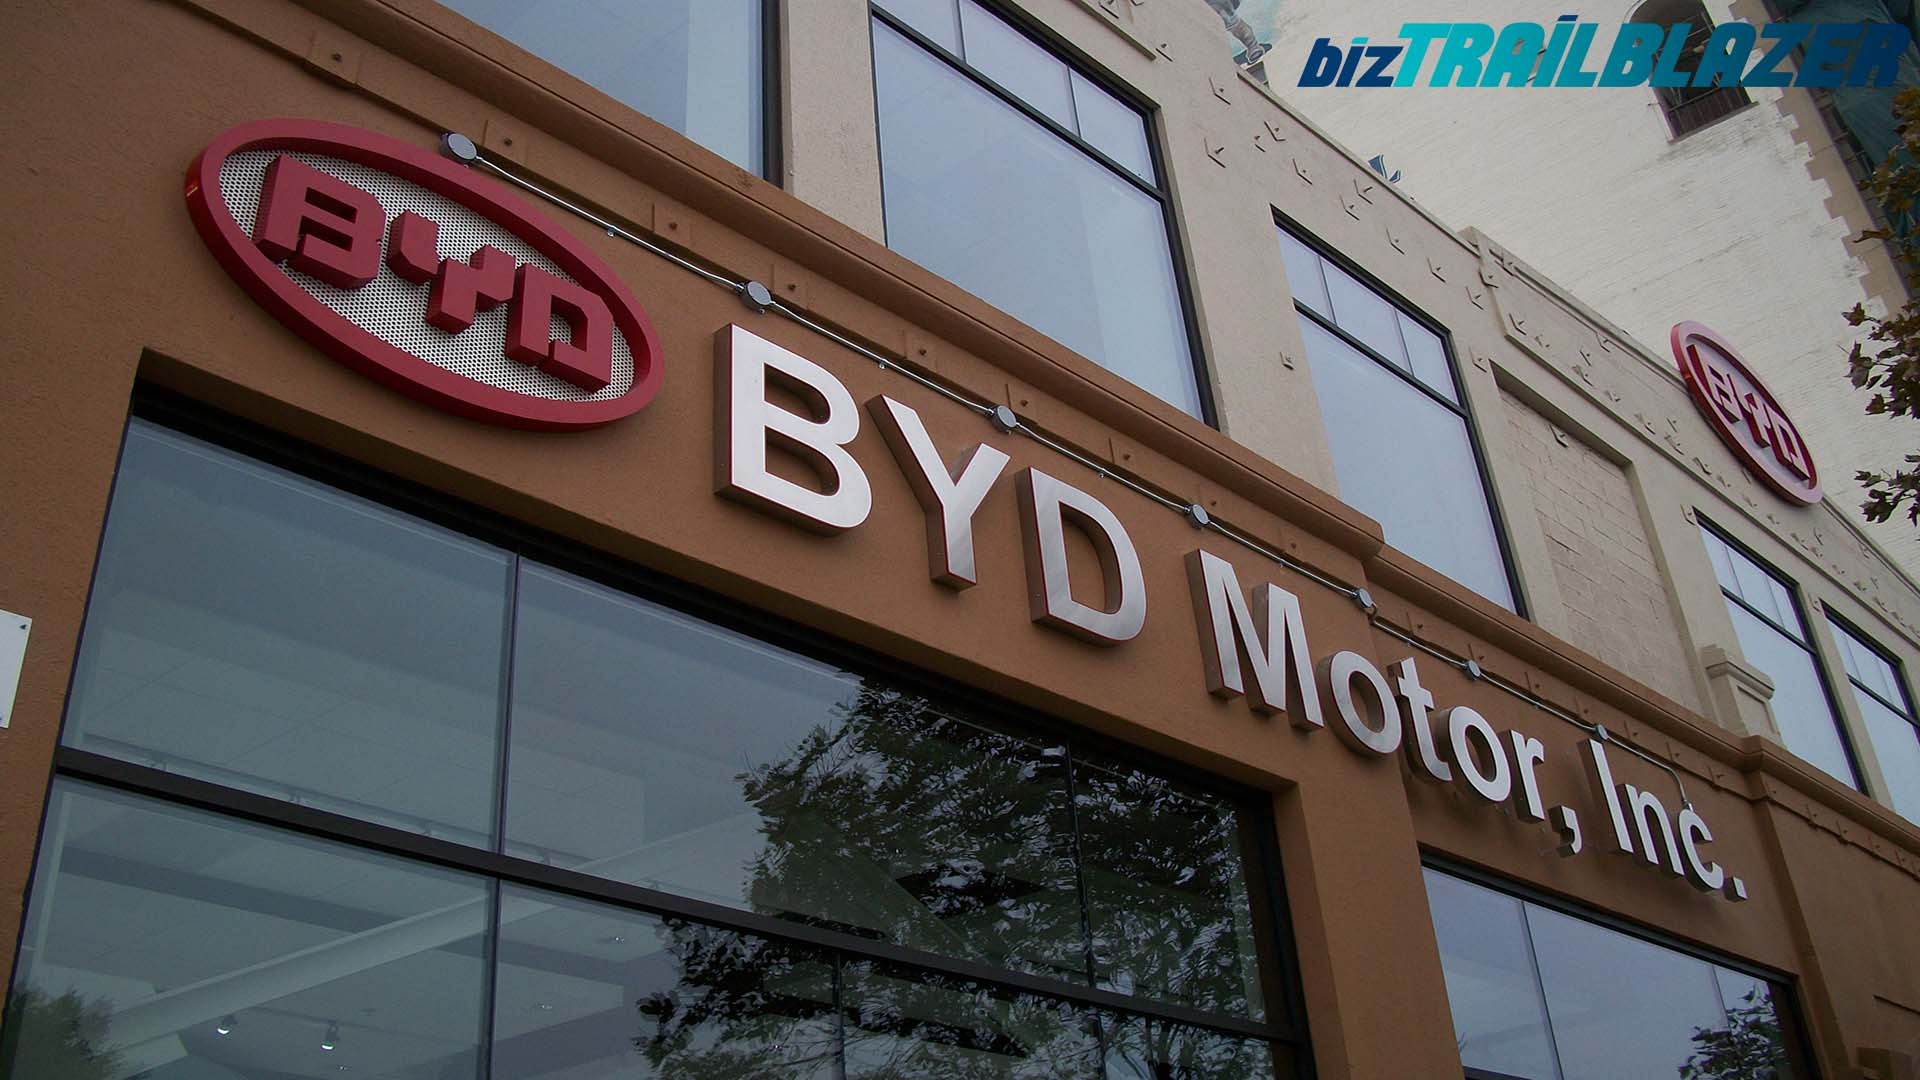 BizTrailBlazer-Blog-Chinas-BYD-and-Didi-to-Launch-Ride-Hailing-Electric-Vehicle